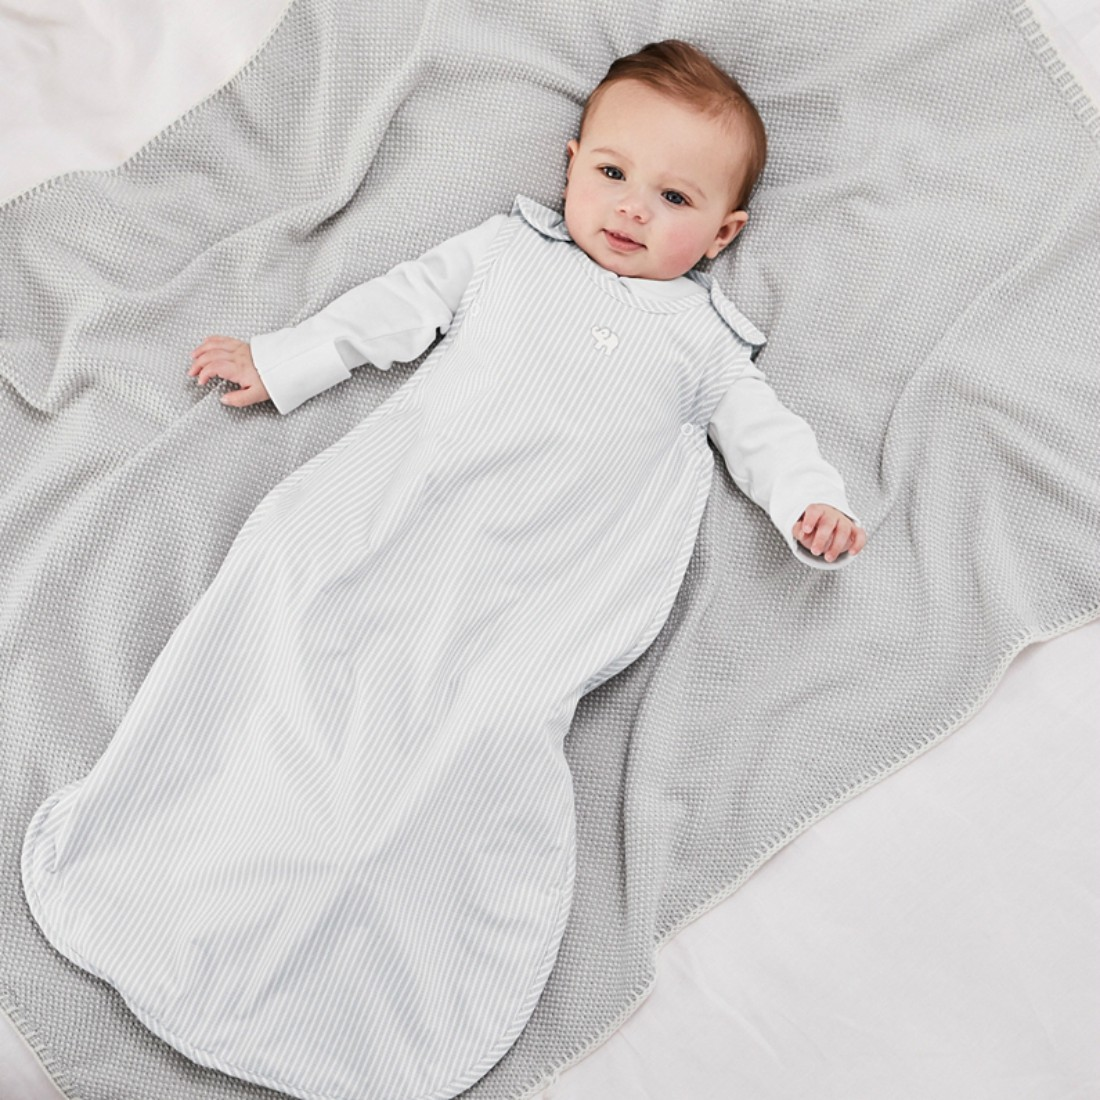 74e30e9f48e One reader will win the Kimbo Seersucker Sleeping Bag 0.5 togs for 0-6  months from The White Company. This gorgeous sleeping bag has an RRP of £28.